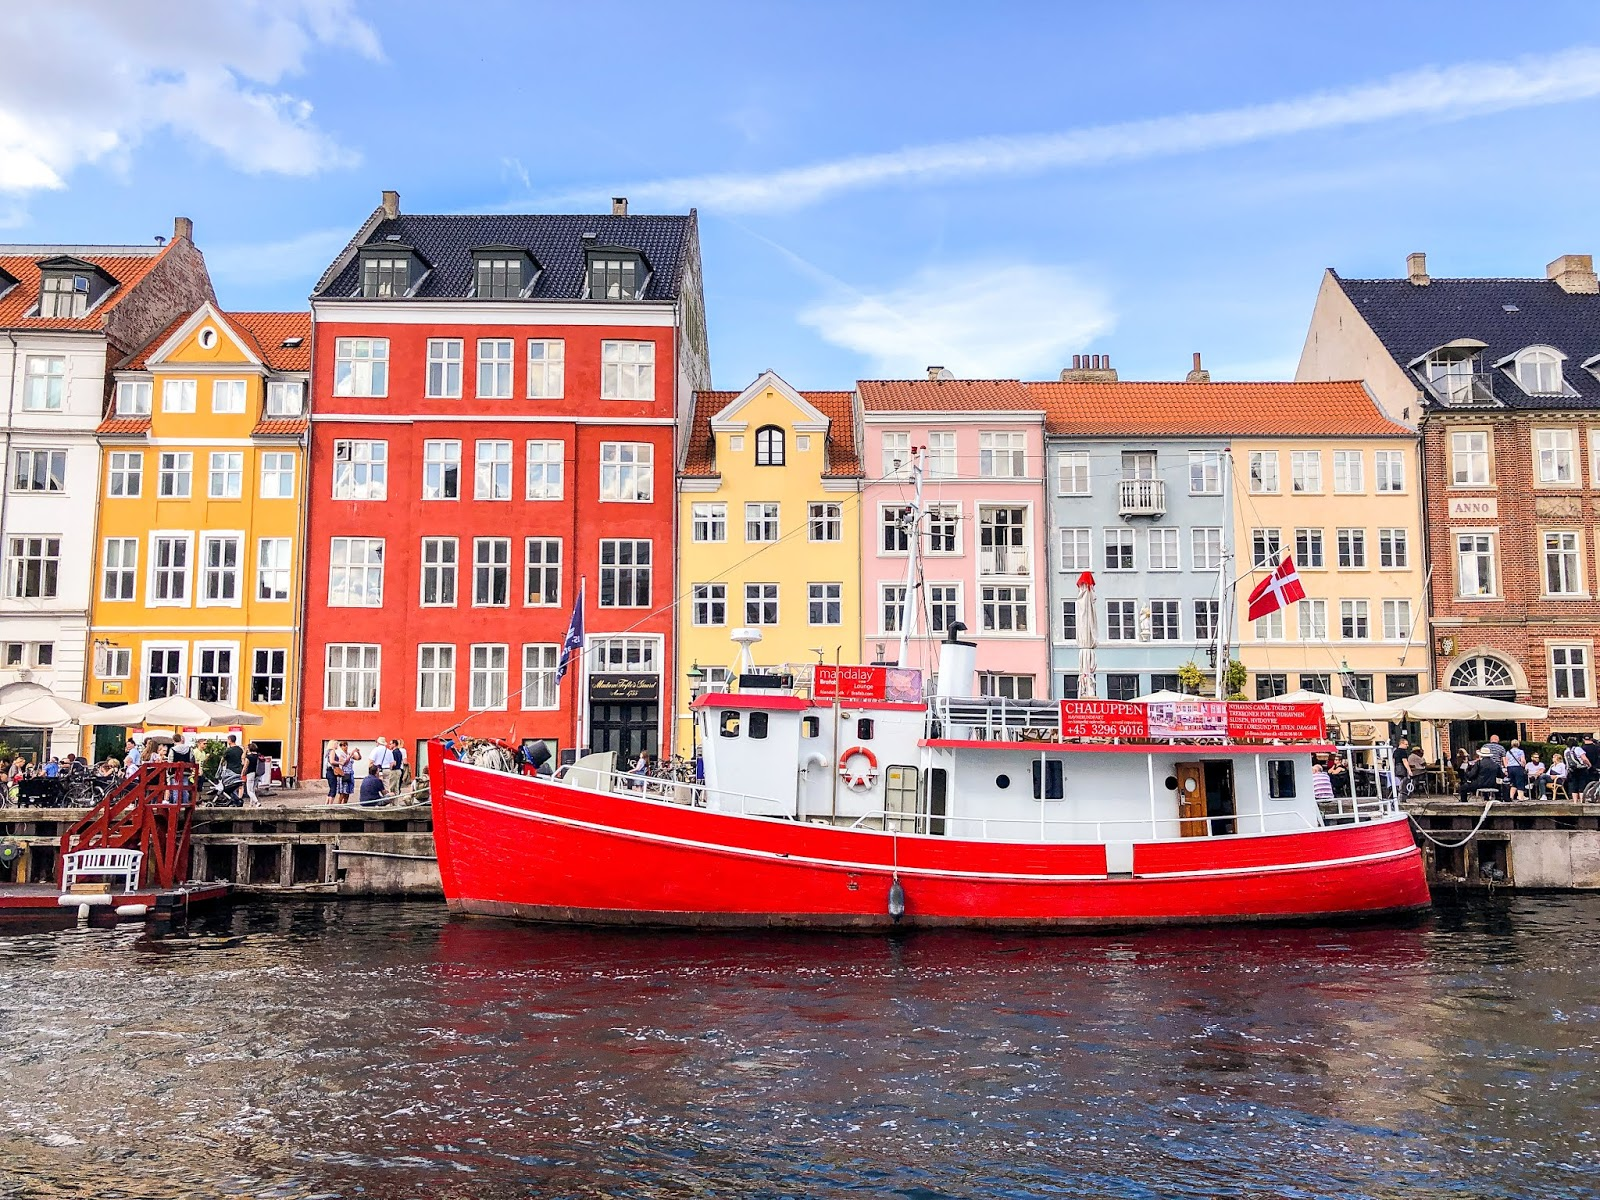 boat on river against colourful houses in typical Copenhagen scene at nyhavn